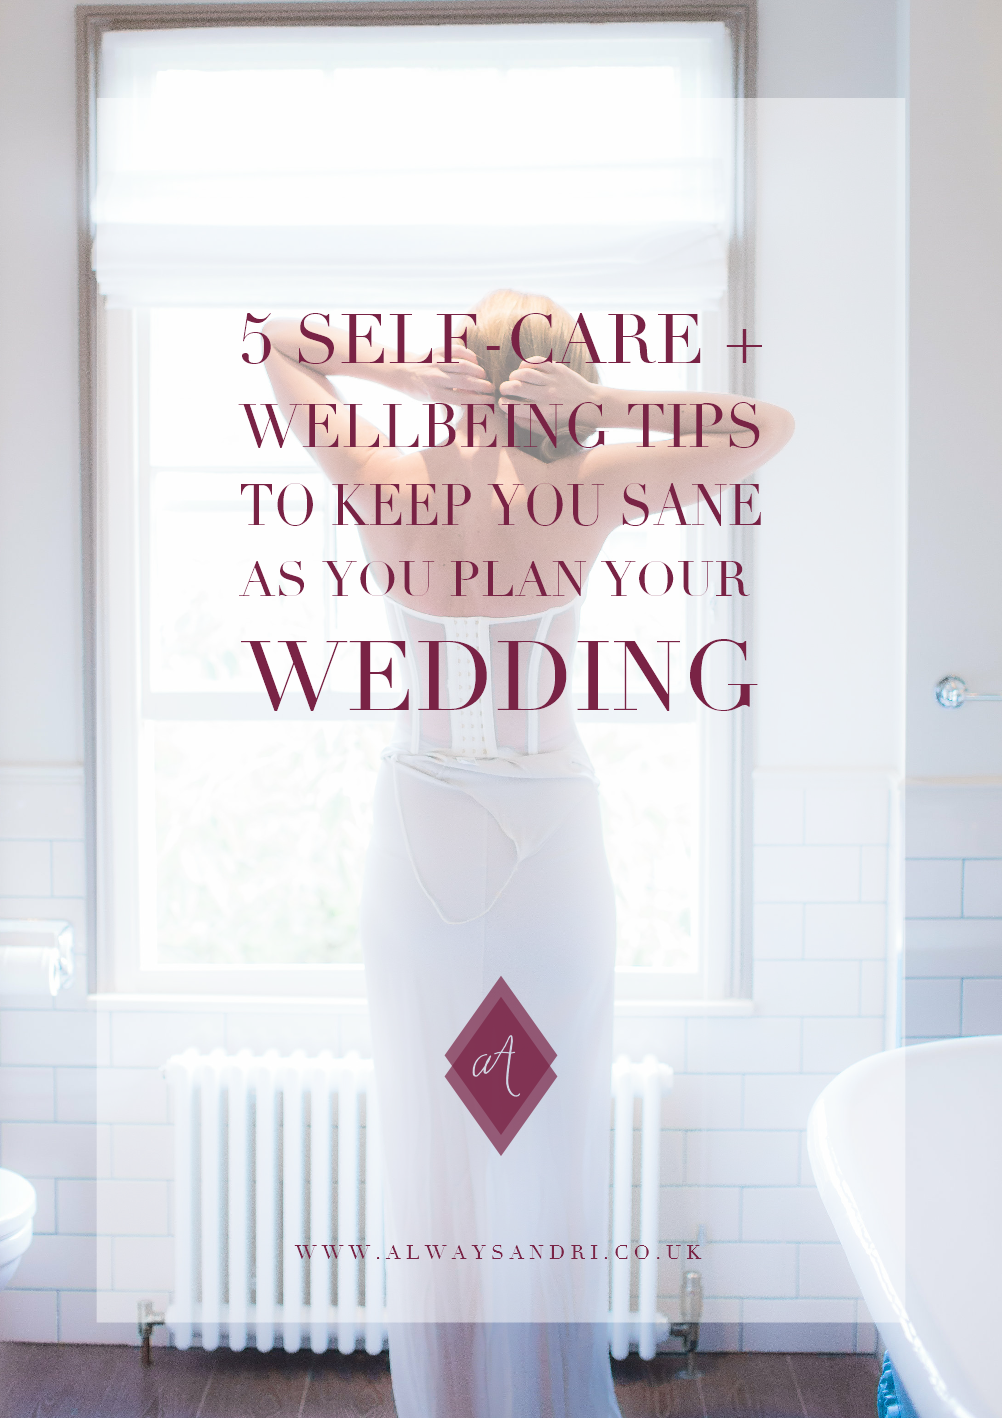 Bride getting ready 5-selfcare-and-wellbeing-tips-to-keep-you-same-as-you-plan-your-wedding